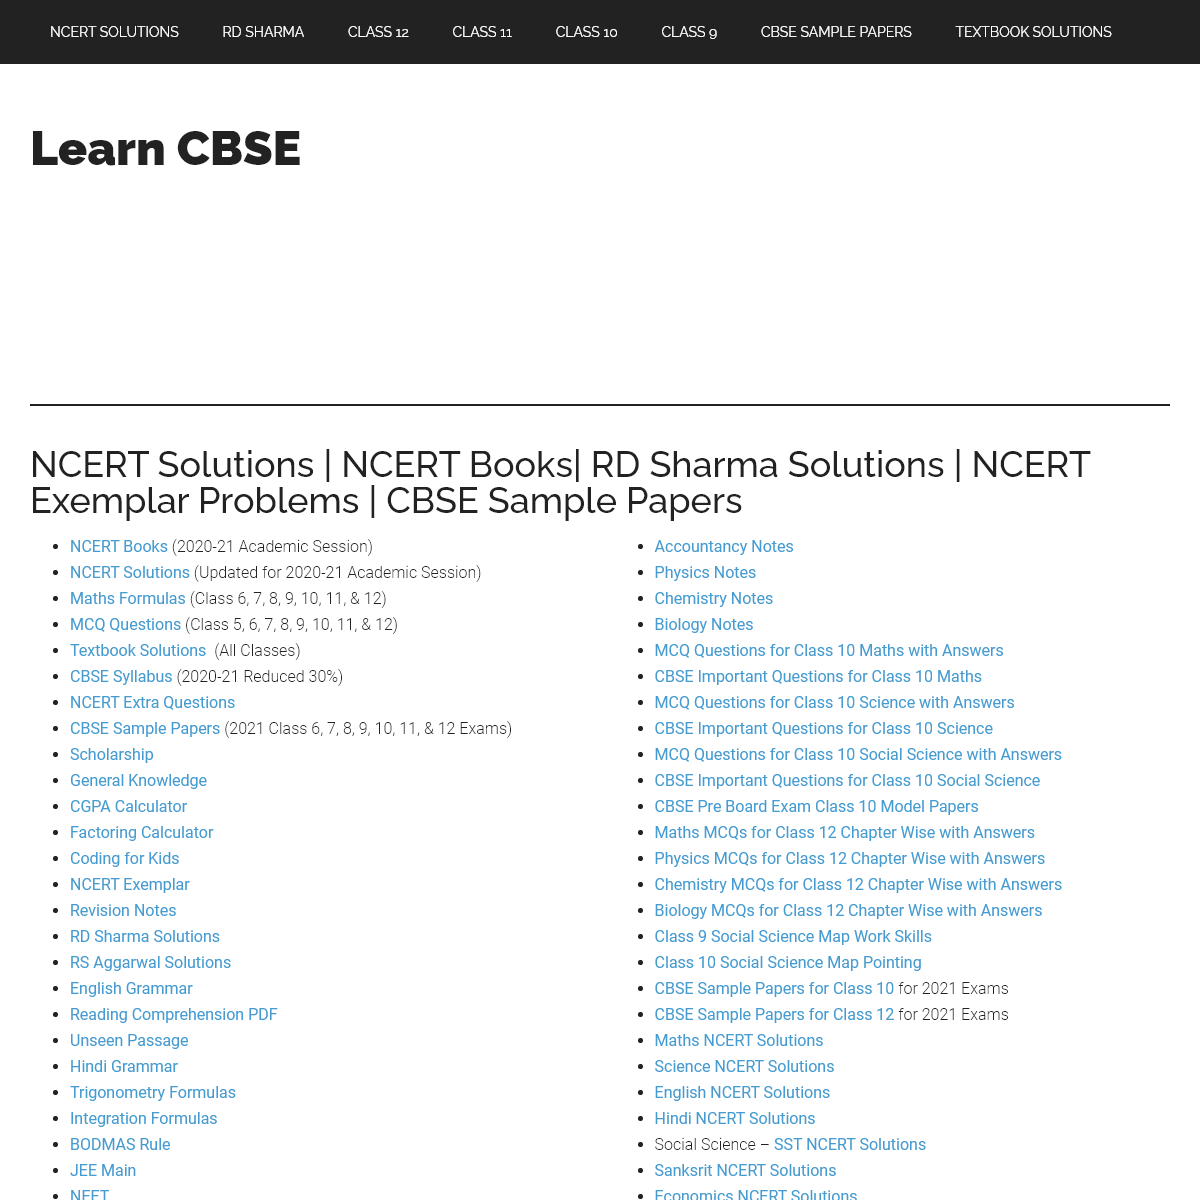 NCERT Solutions - RD Sharma Solutions - NCERT Exemplar Problems - CBSE Sample Papers